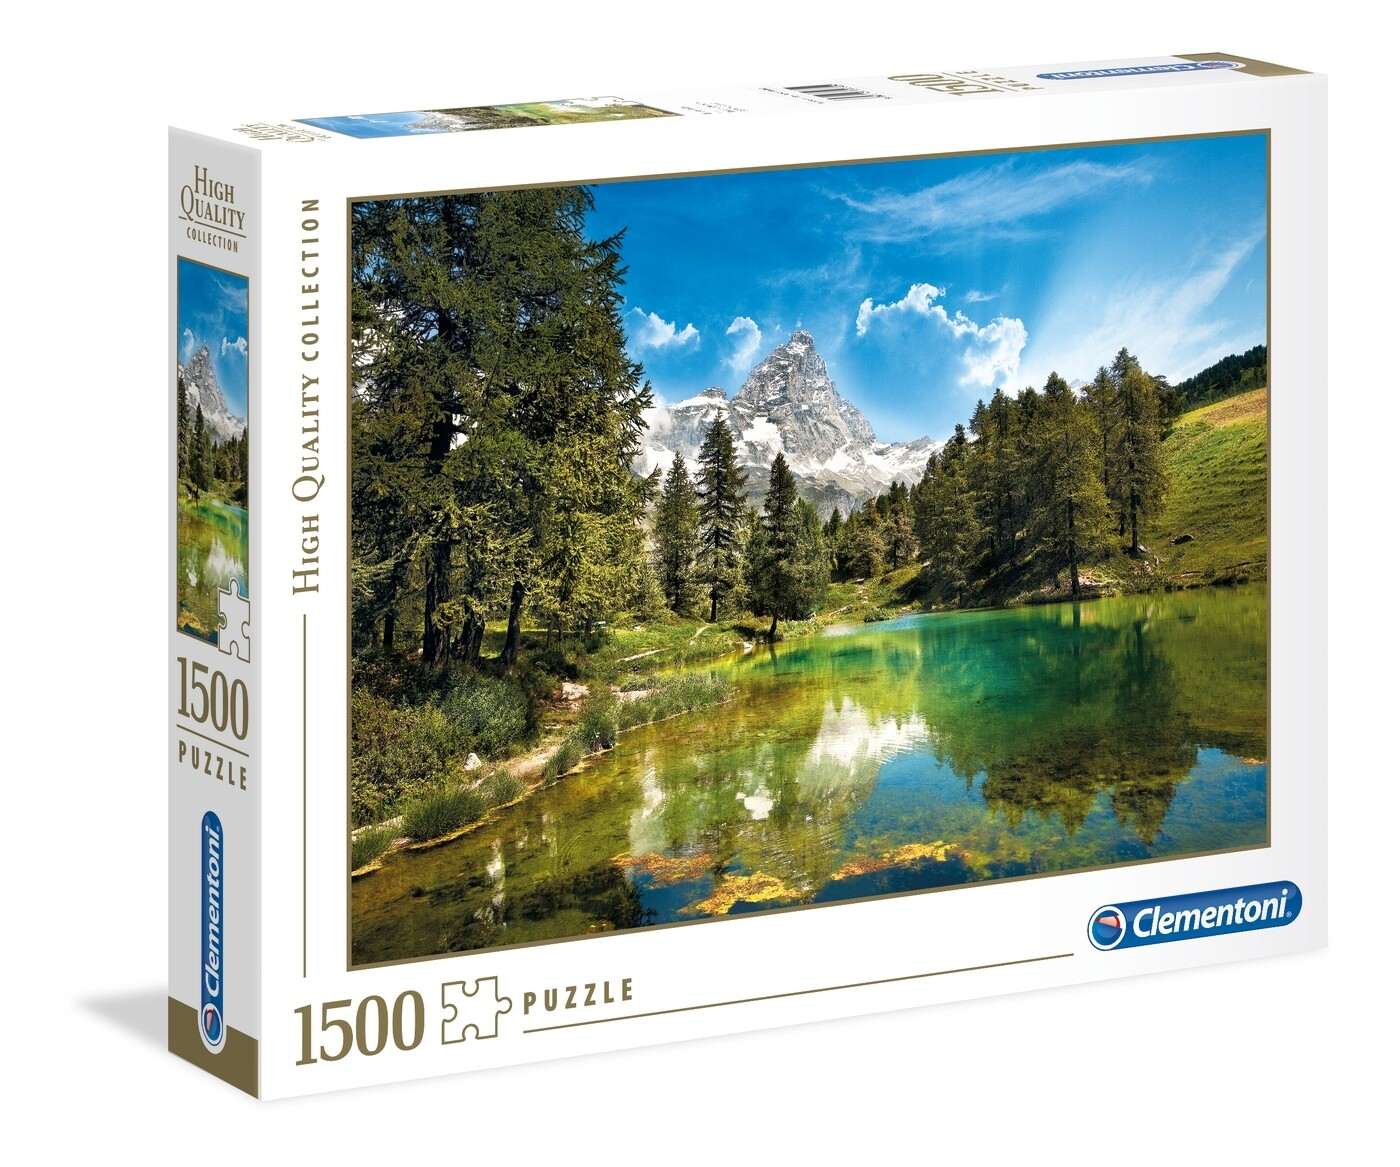 PUZZLE 1500 HQ Blue Lake - CLEMENTONI